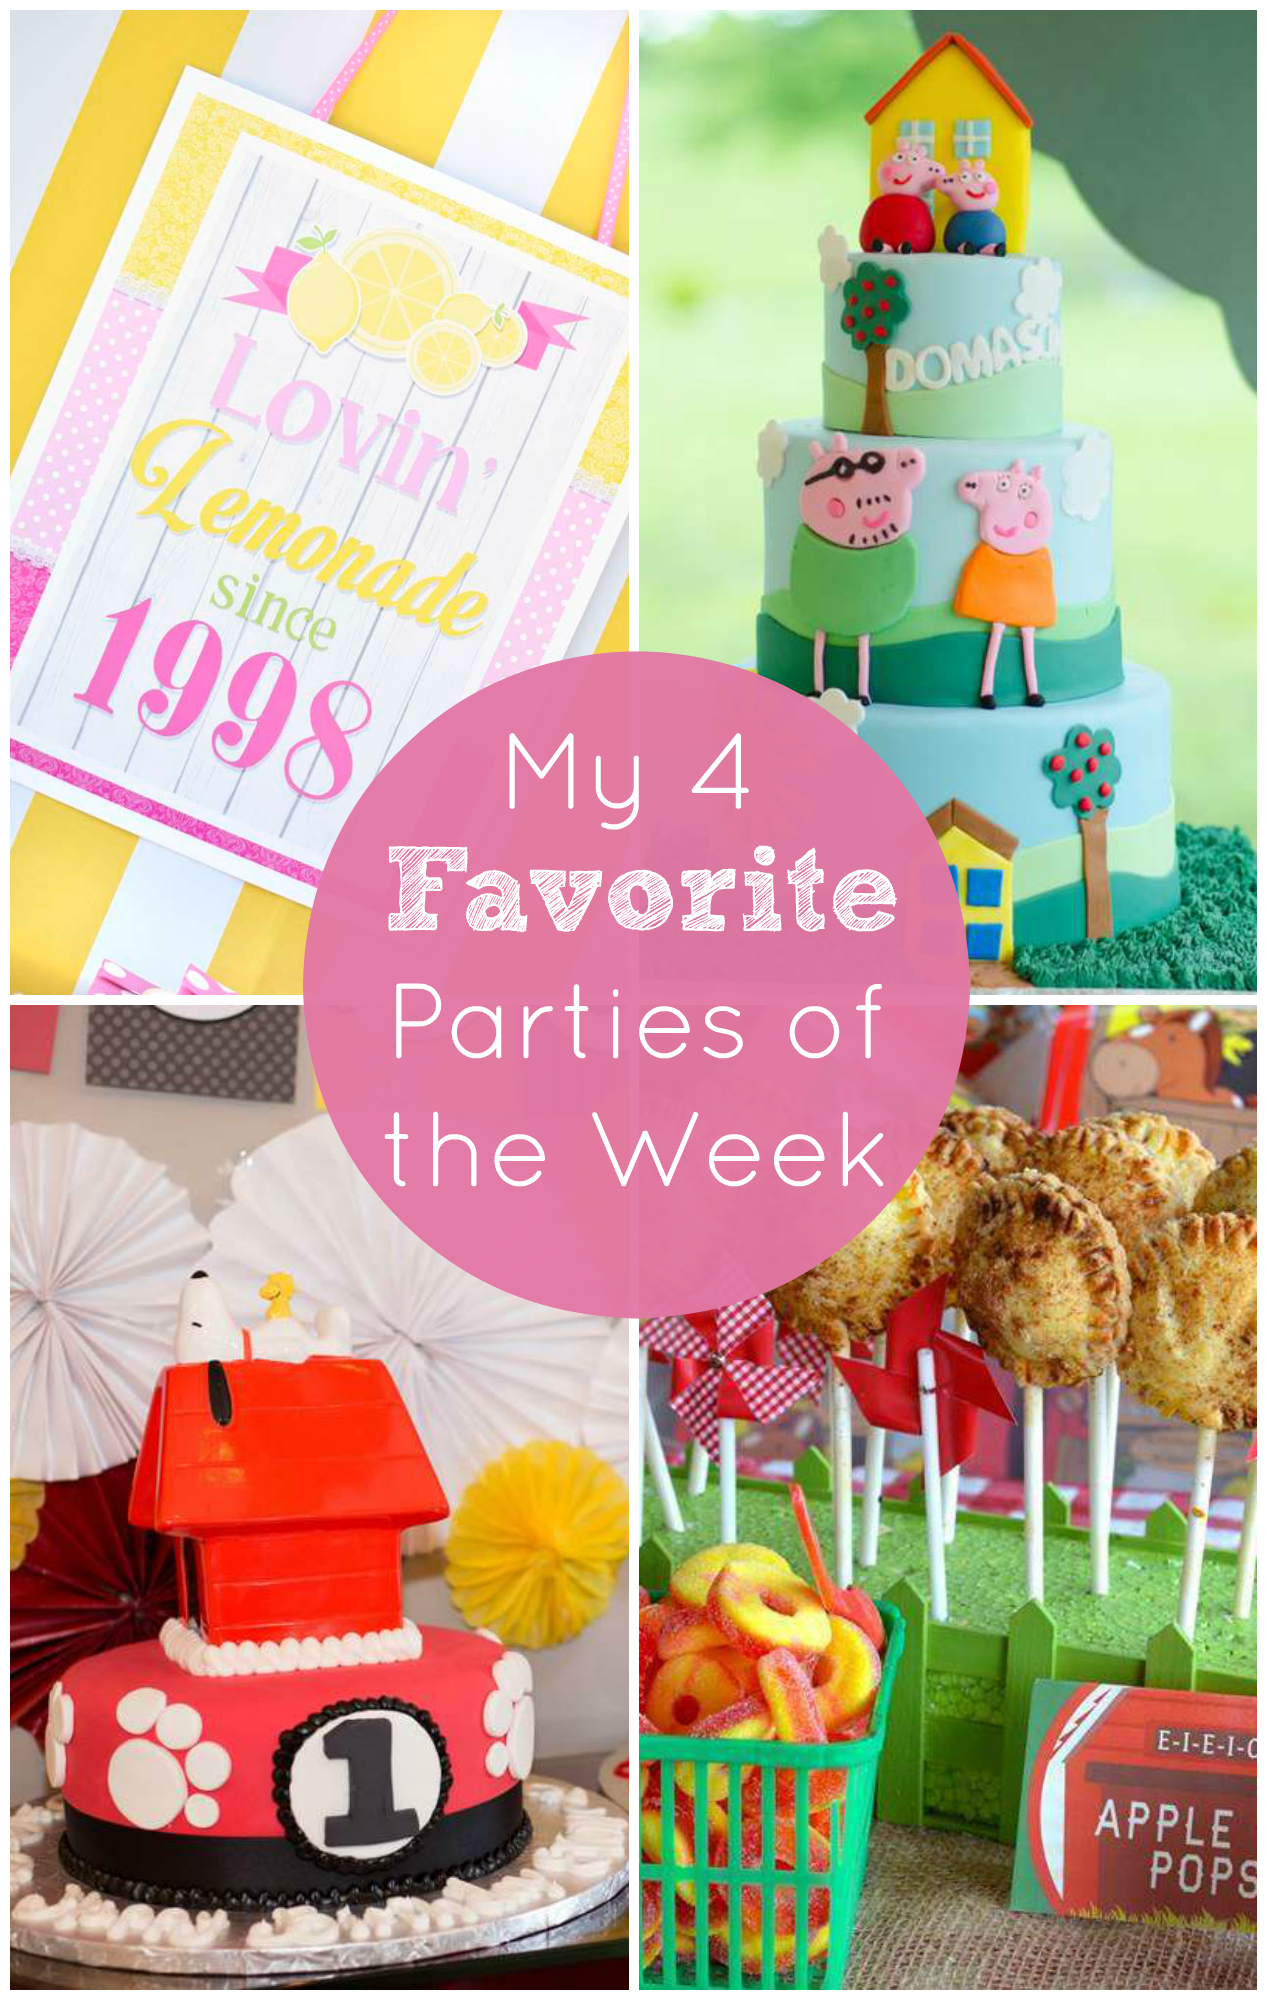 Check Out This Pink Lemonade Party and My Other Favorites ...